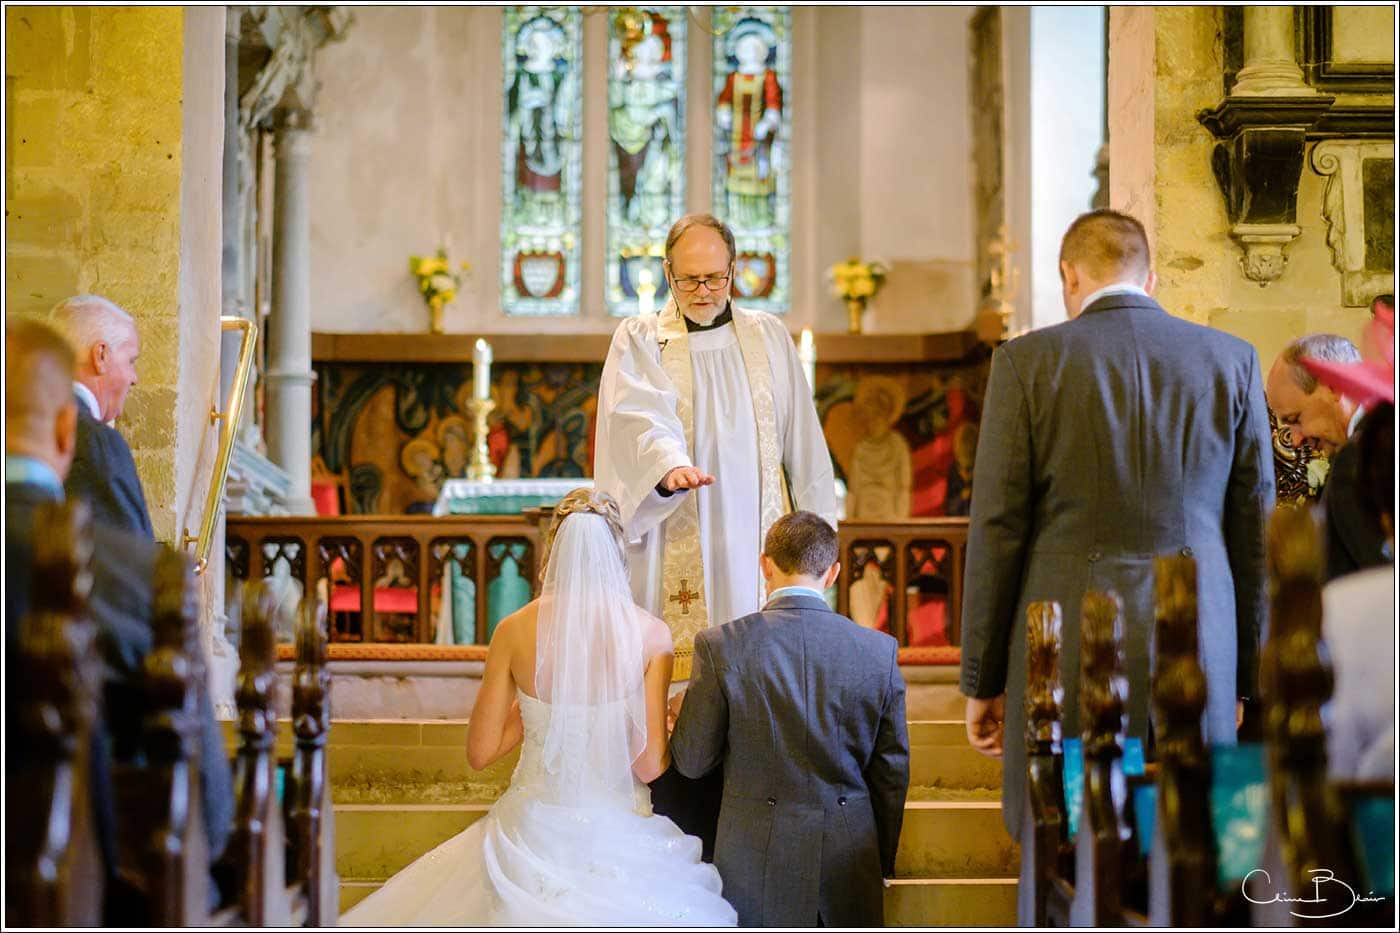 Bride and groom being blessed by minister in church-by Hampton manor wedding photographer Clive Blair Photography